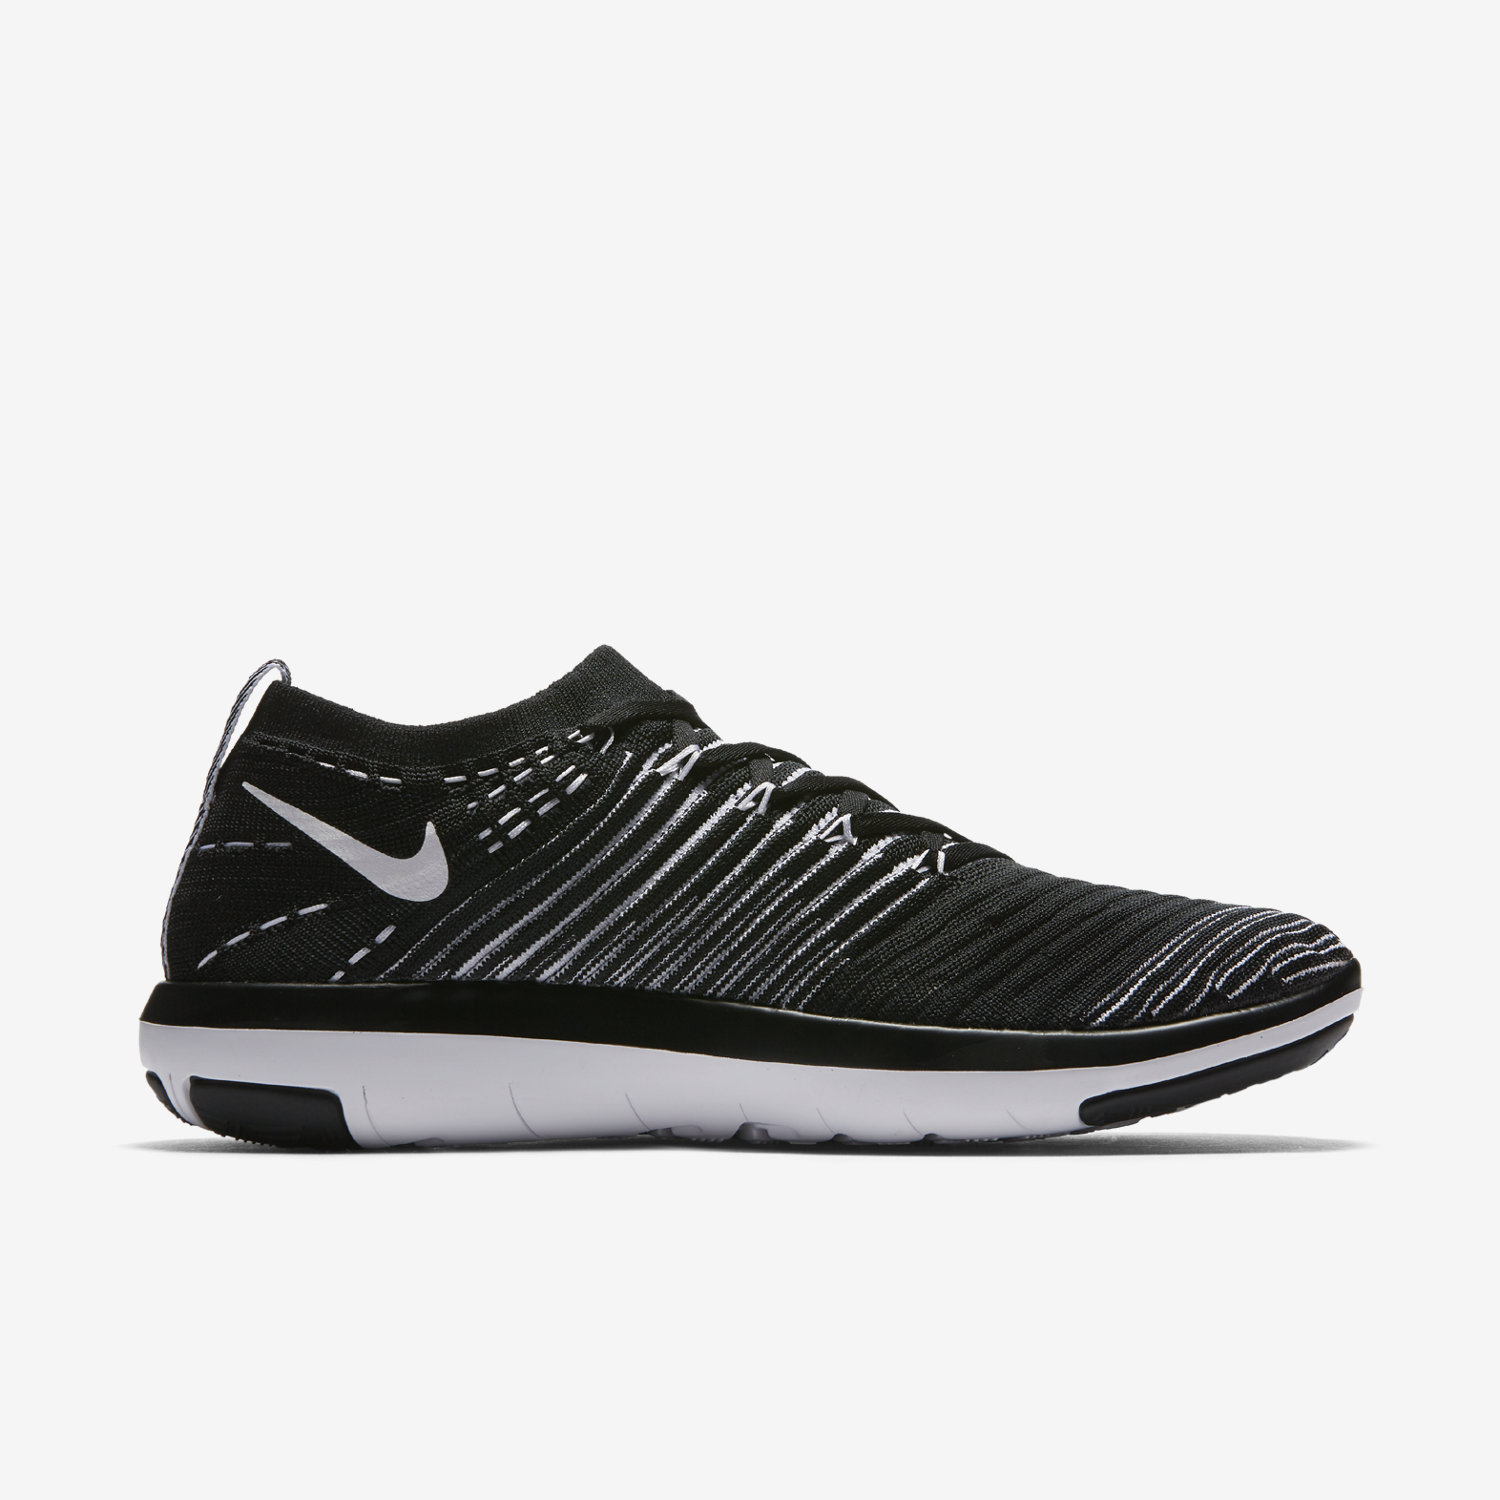 Nike Free Transform Flyknit Black